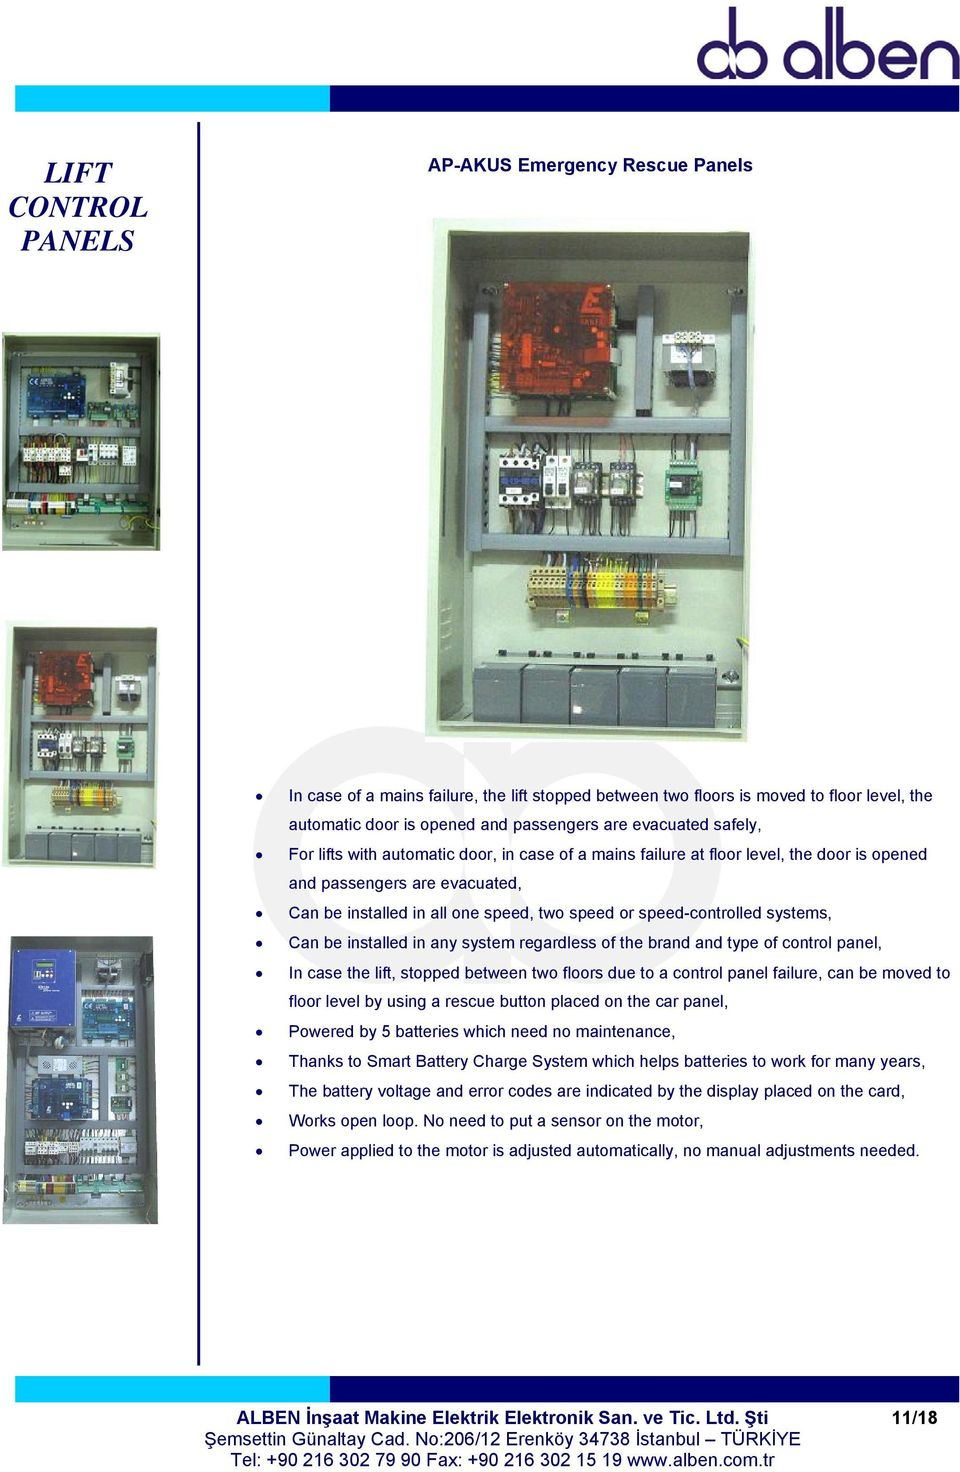 systems, Can be installed in any system regardless of the brand and type of control panel, In case the lift, stopped between two floors due to a control panel failure, can be moved to floor level by